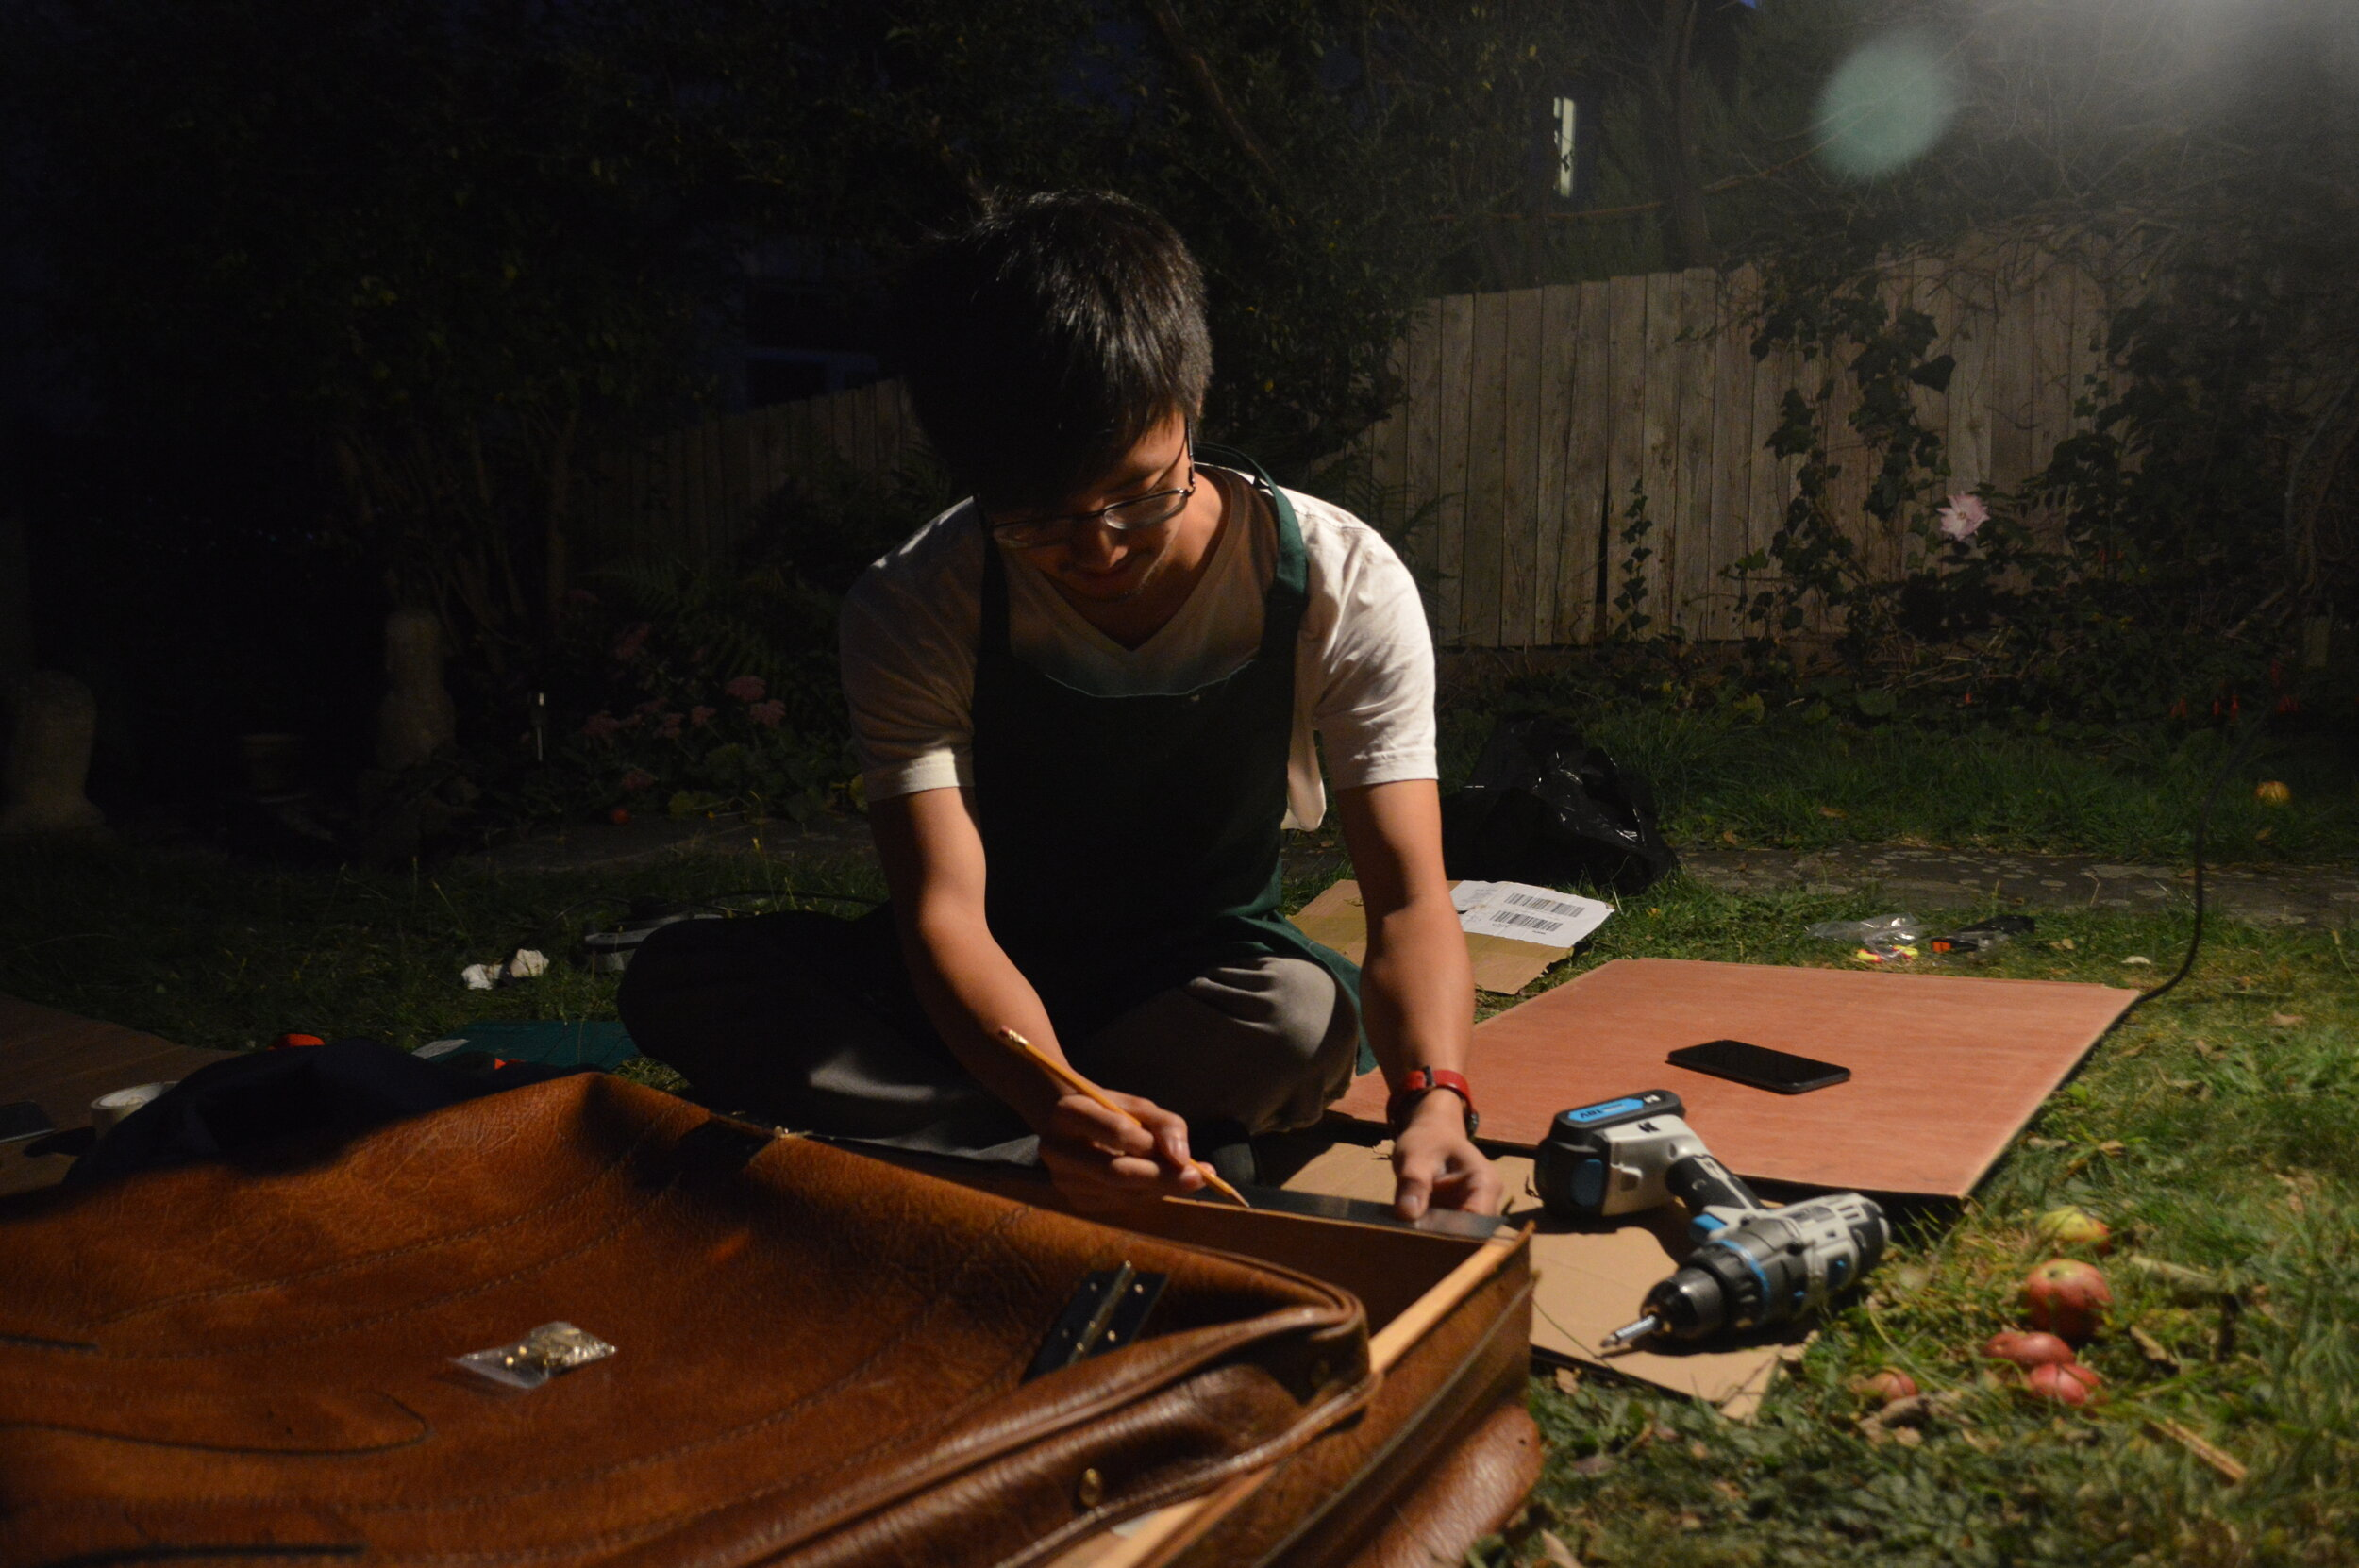 Minh sitting down outside nailing wood into the leather suitcase